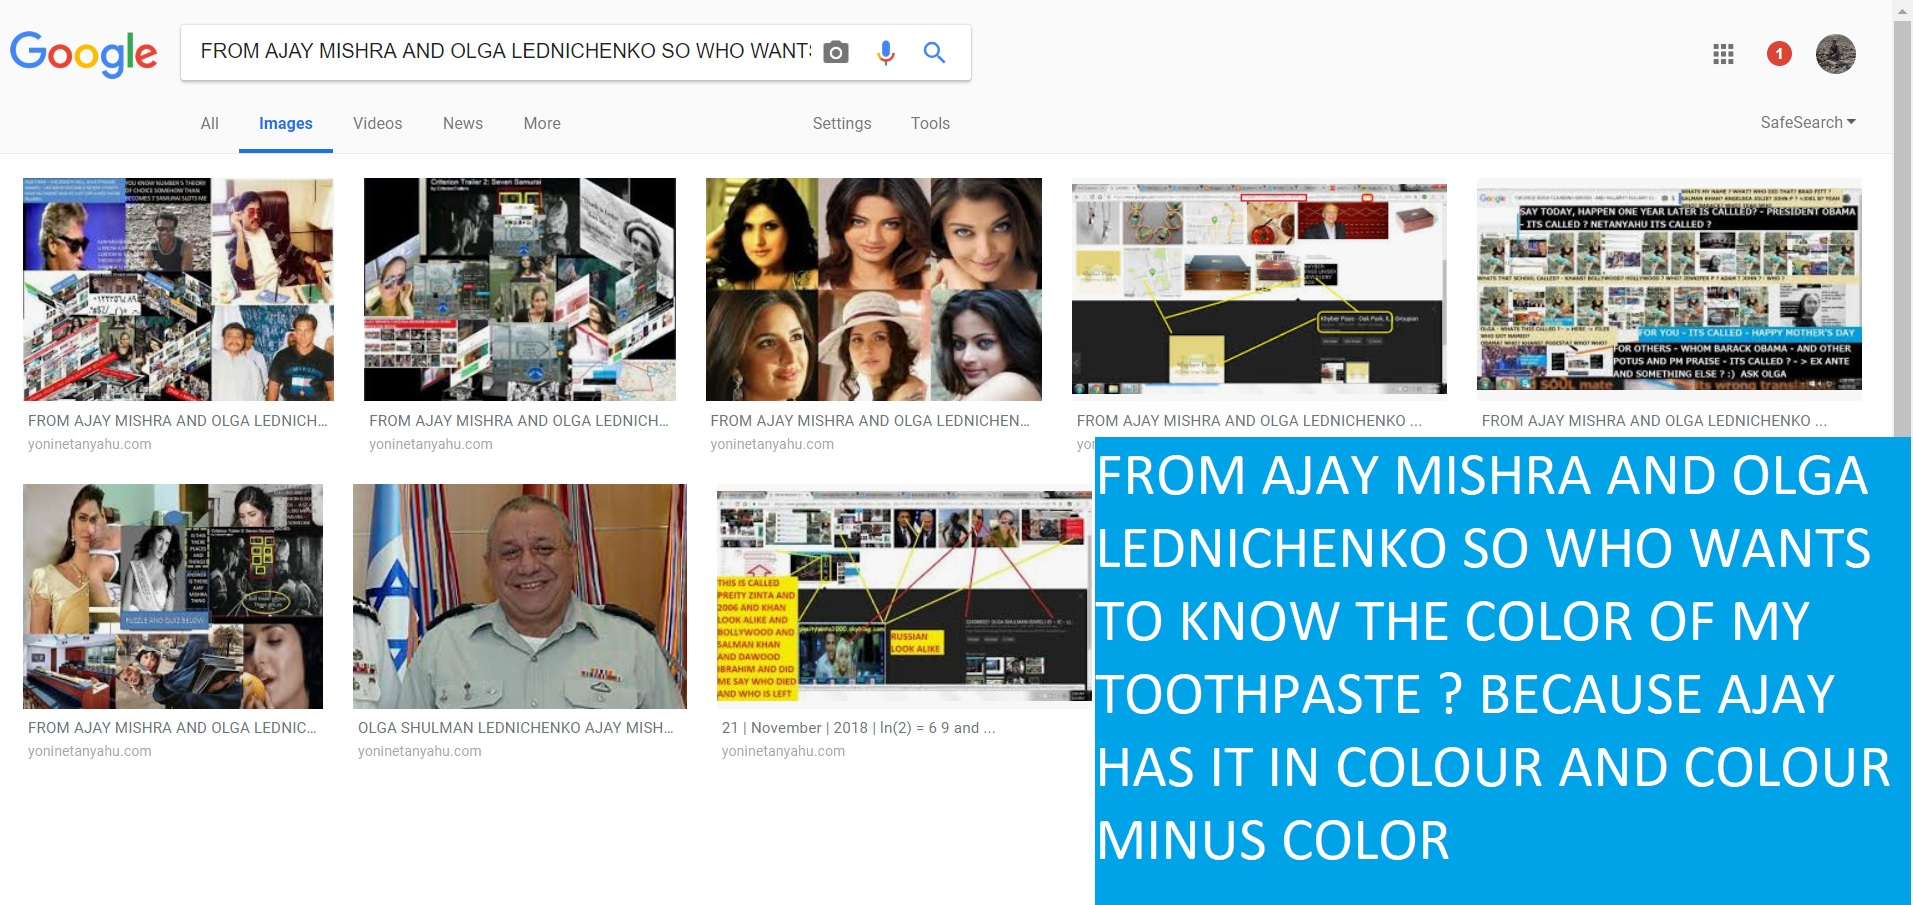 FROM AJAY MISHRA AND OLGA LEDNICHENKO SO WHO WANTS TO KNOW THE COLOR OF MY TOOTHPASTE BECAUSE AJAY HAS IT IN COLOUR AND COLOUR MINUS COLOR--